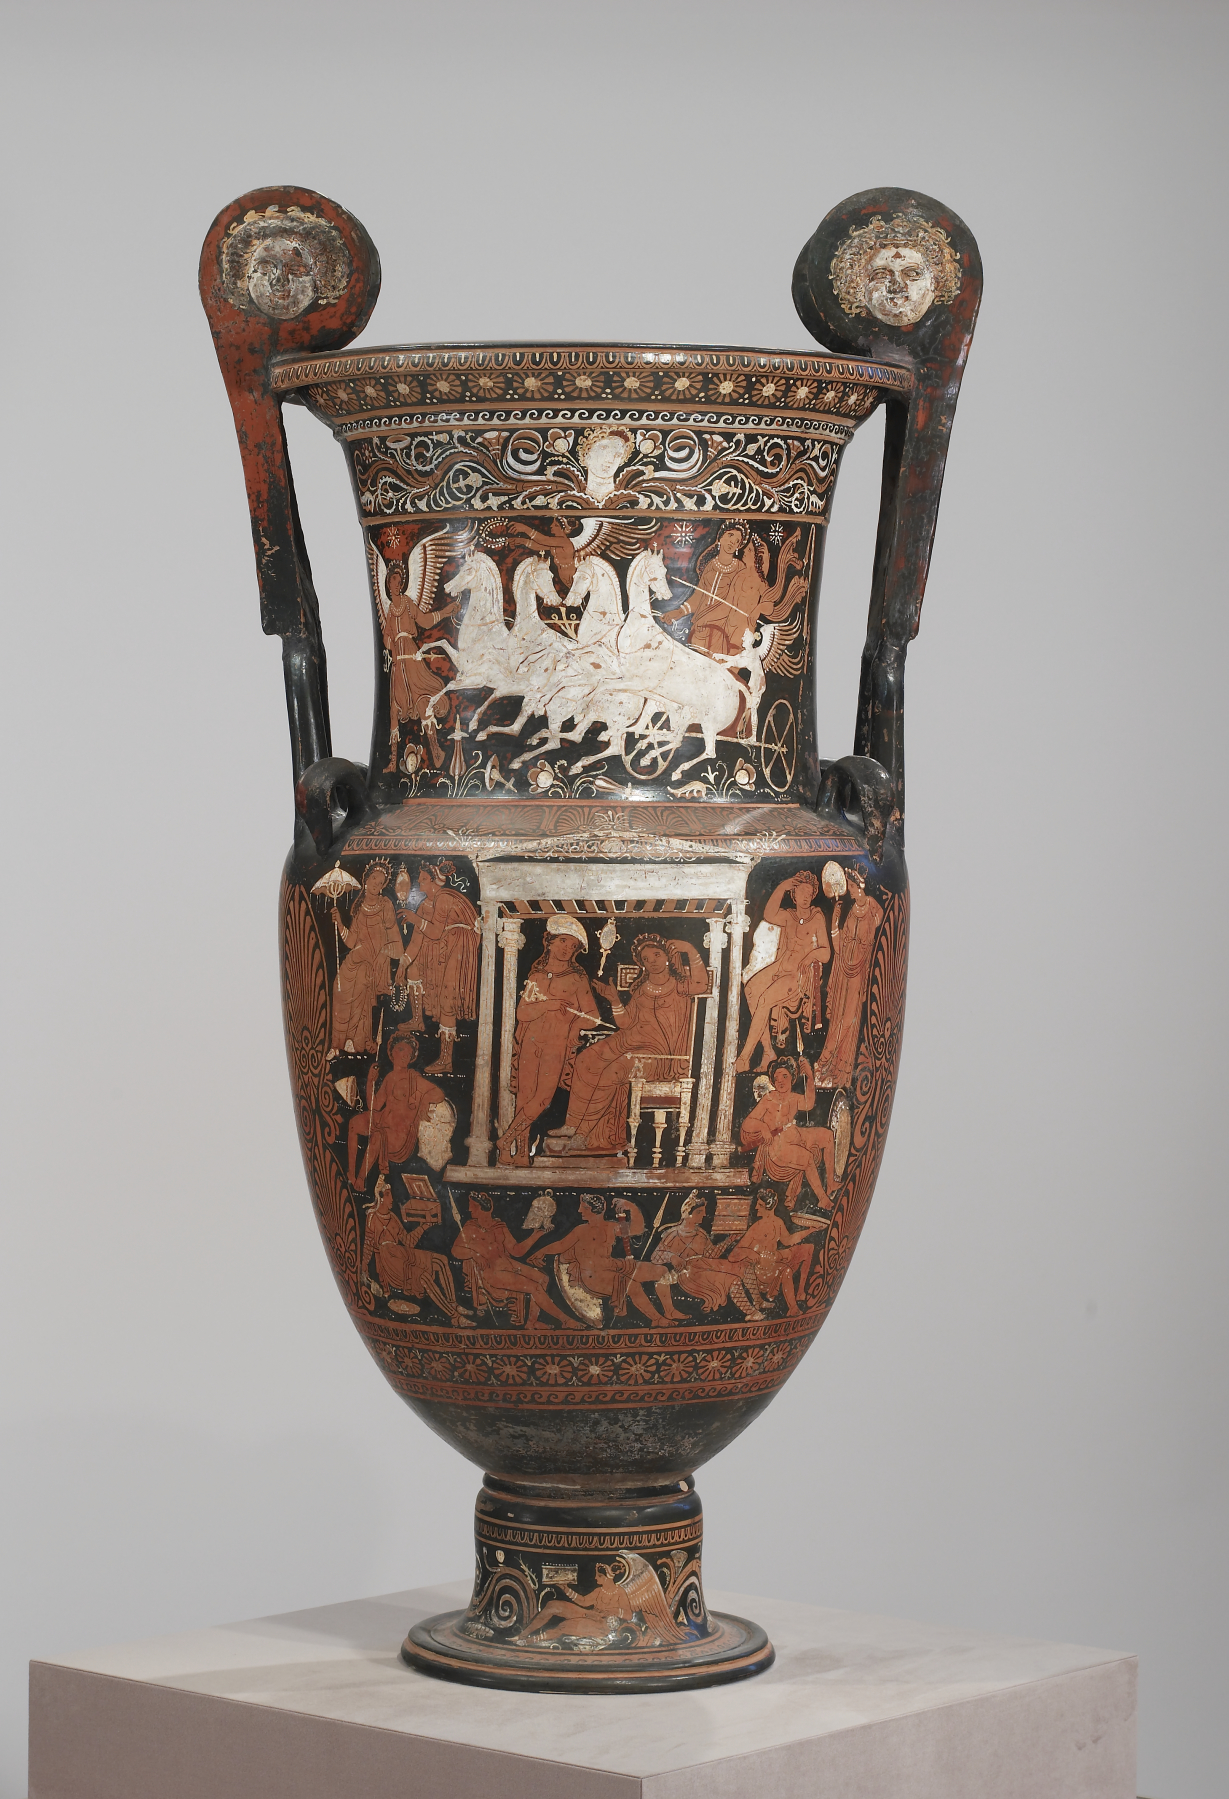 Volute Krater with Hermes in the Underworld